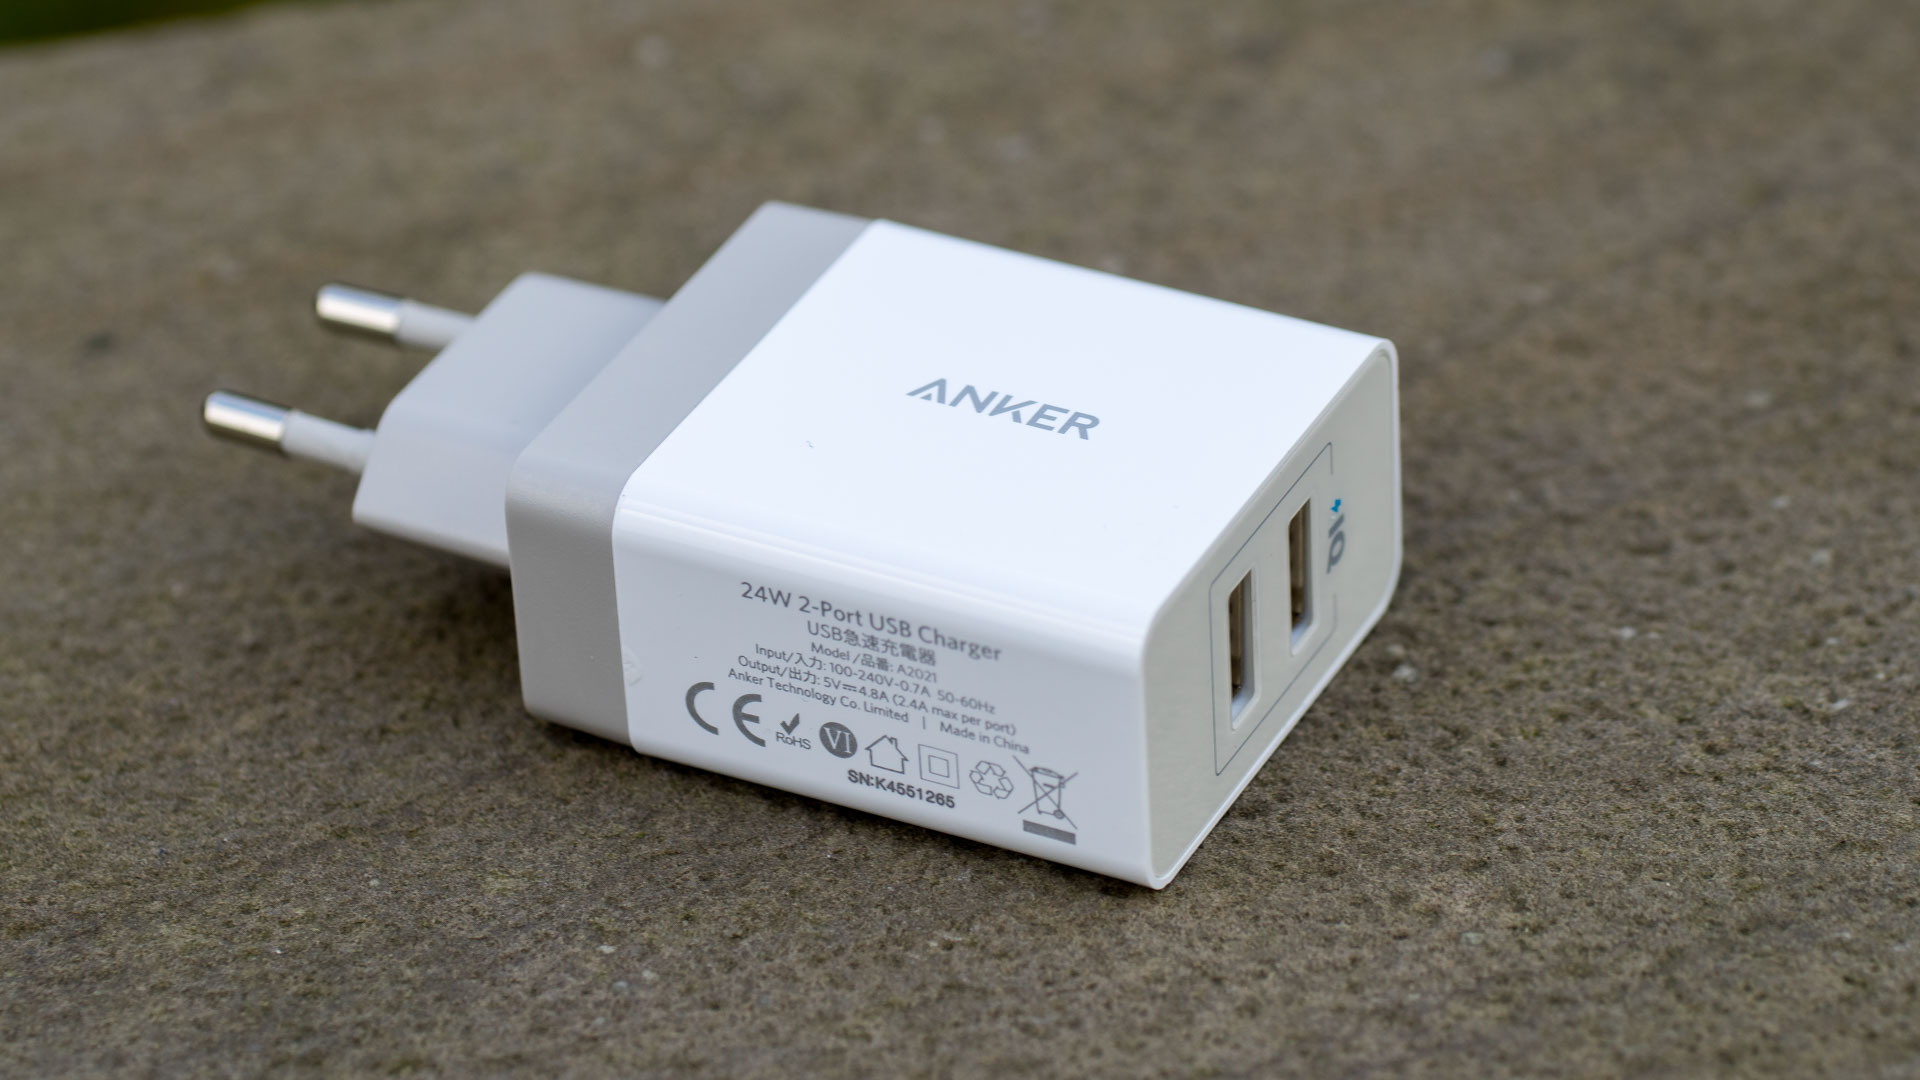 anker 24w 2 port usb ladeger t im test das beste usb ladeger t techtest. Black Bedroom Furniture Sets. Home Design Ideas